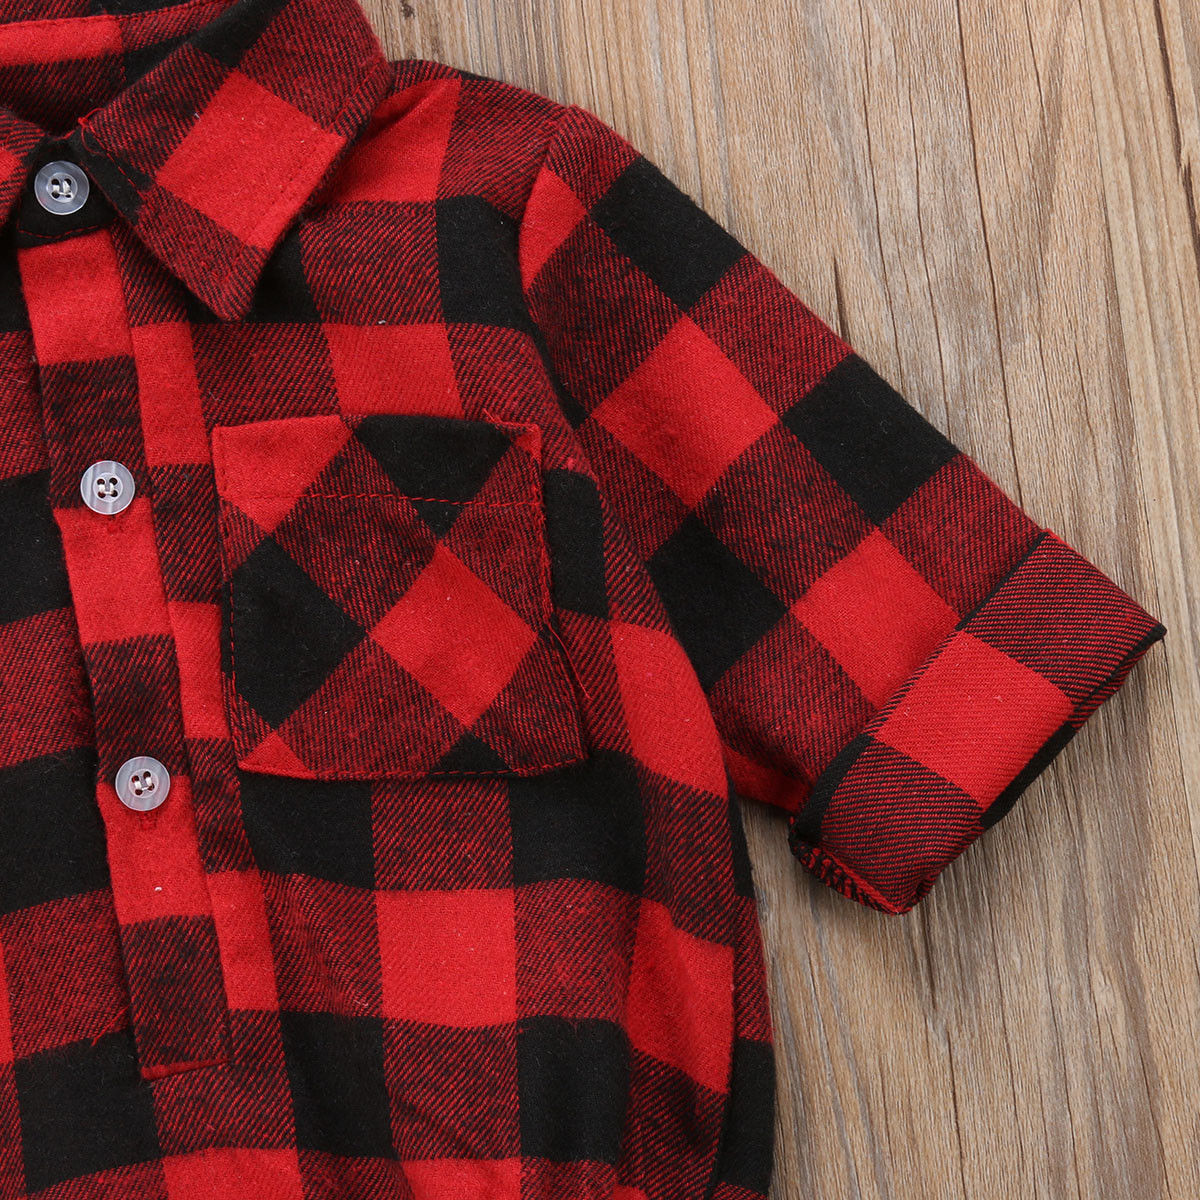 Pudcoco Baby Girls And Boys Unisex Clothes Christmas Plaid Rompers Newborn Baby 0 18 Monthes Fits Pudcoco Baby Girls And Boys Unisex Clothes Christmas Plaid Rompers Newborn Baby 0-18 Monthes Fits One Piece Suit Cartoon Elk New